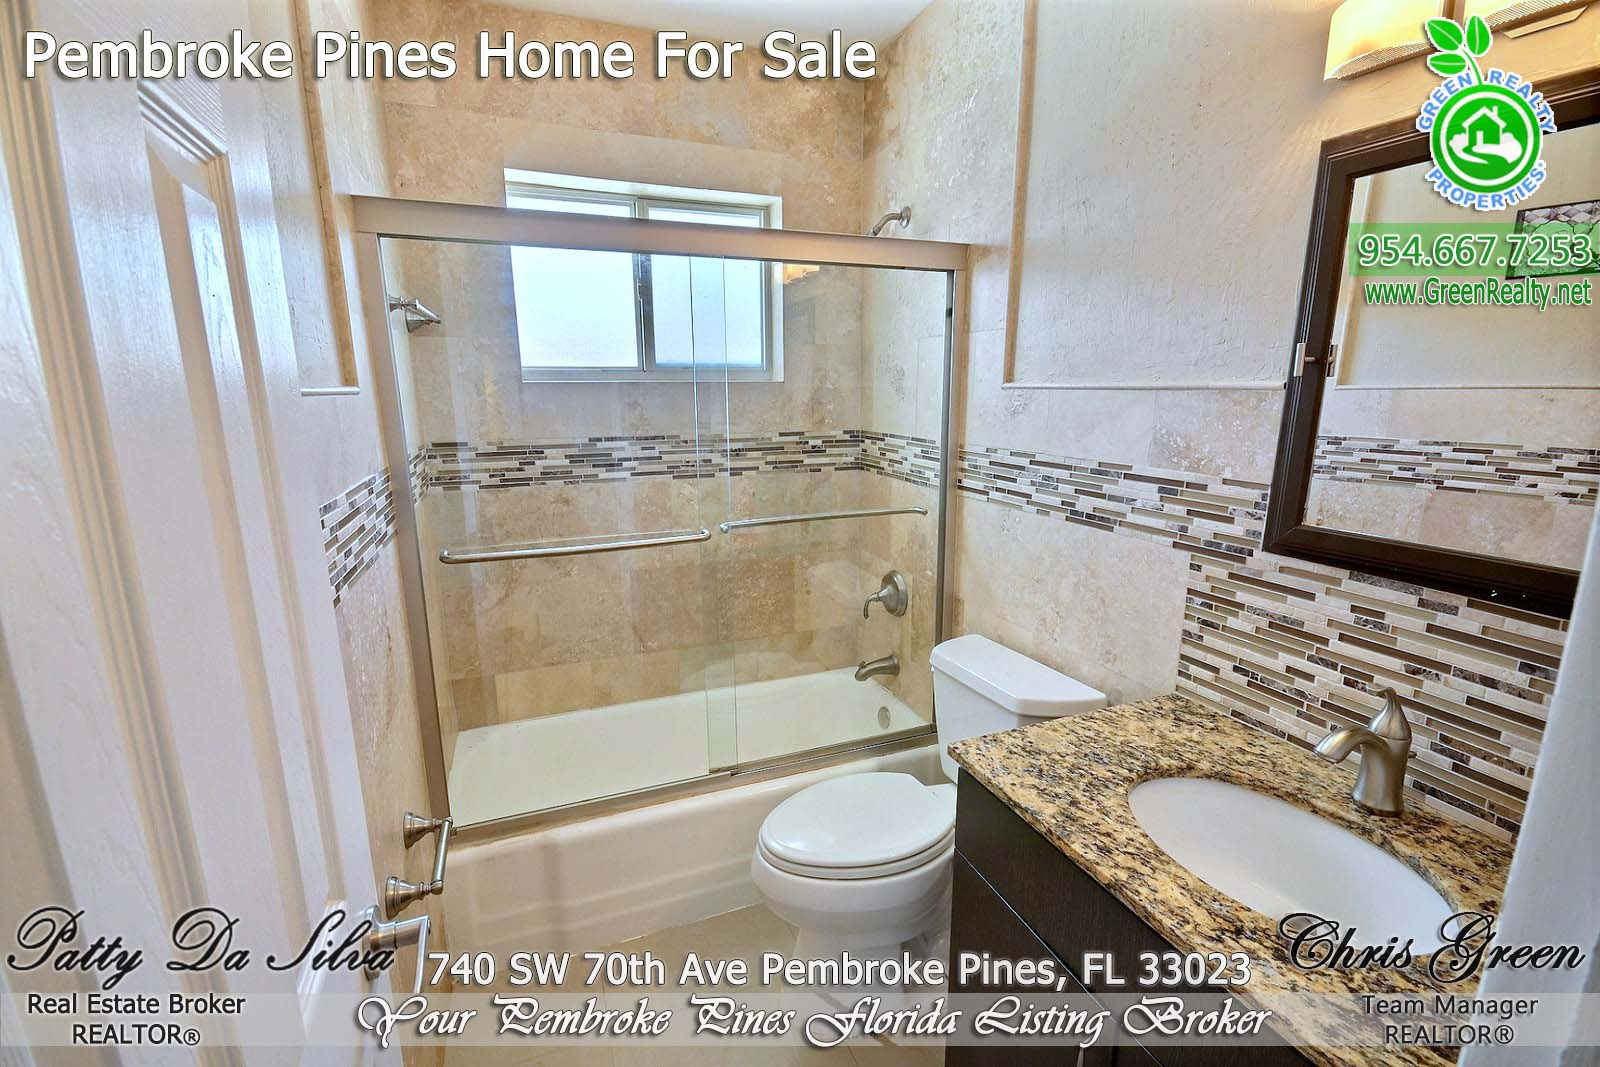 17 Top Pembroke Pines Realtors (3)